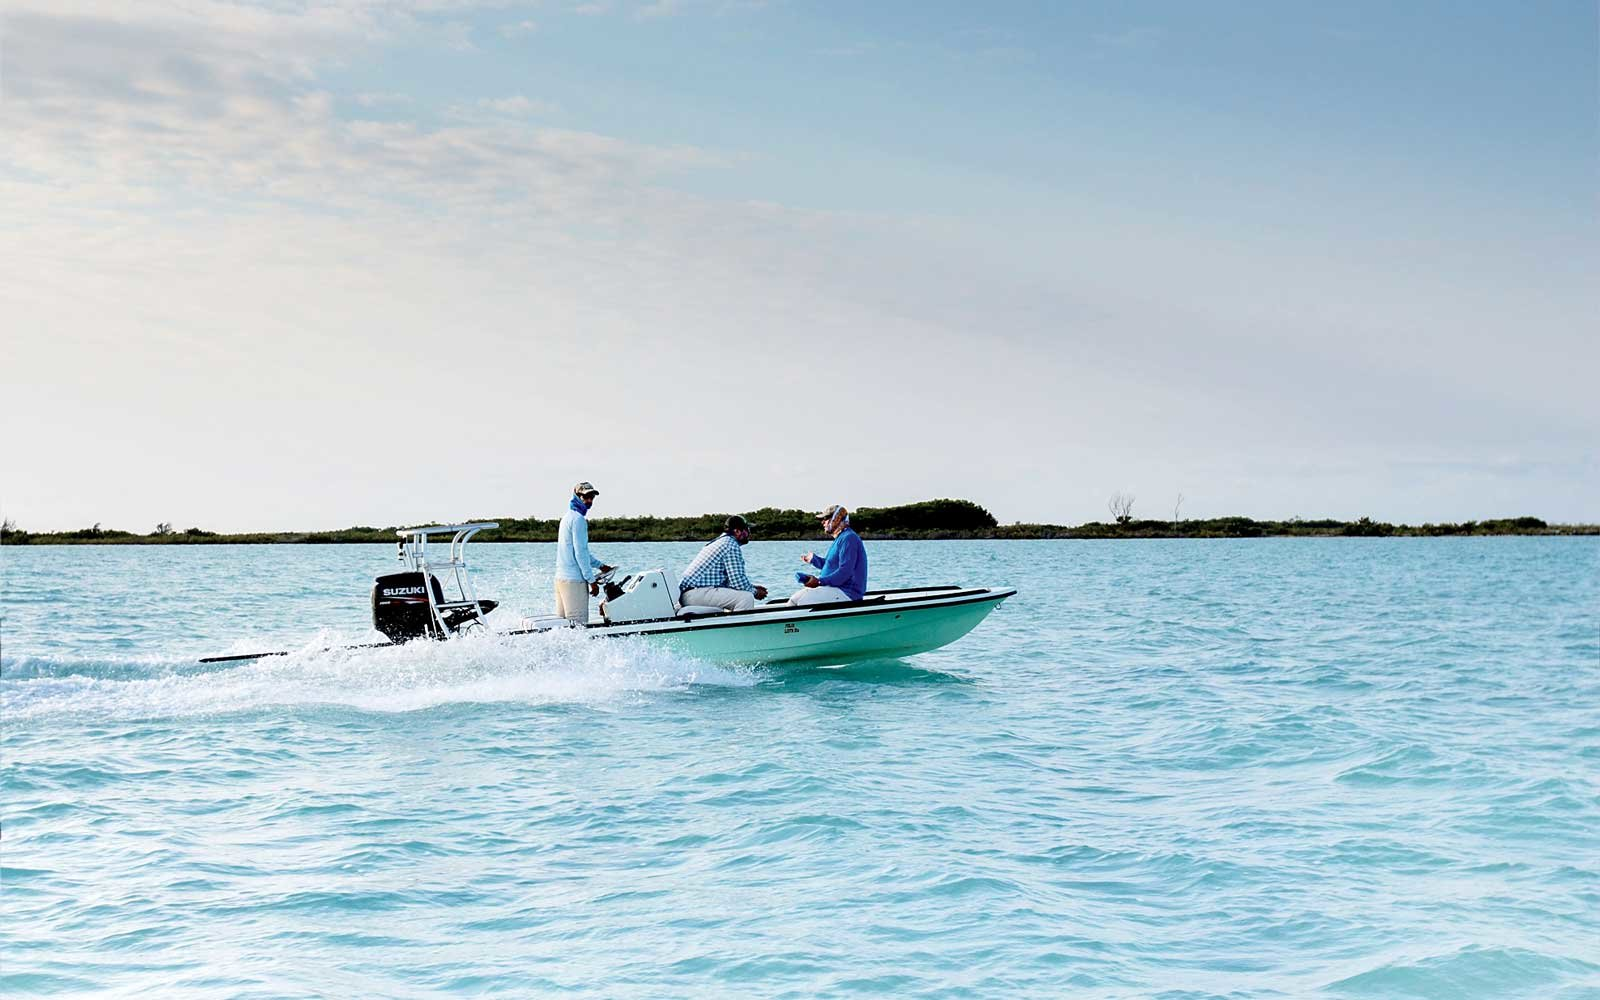 On the water in Cuba.